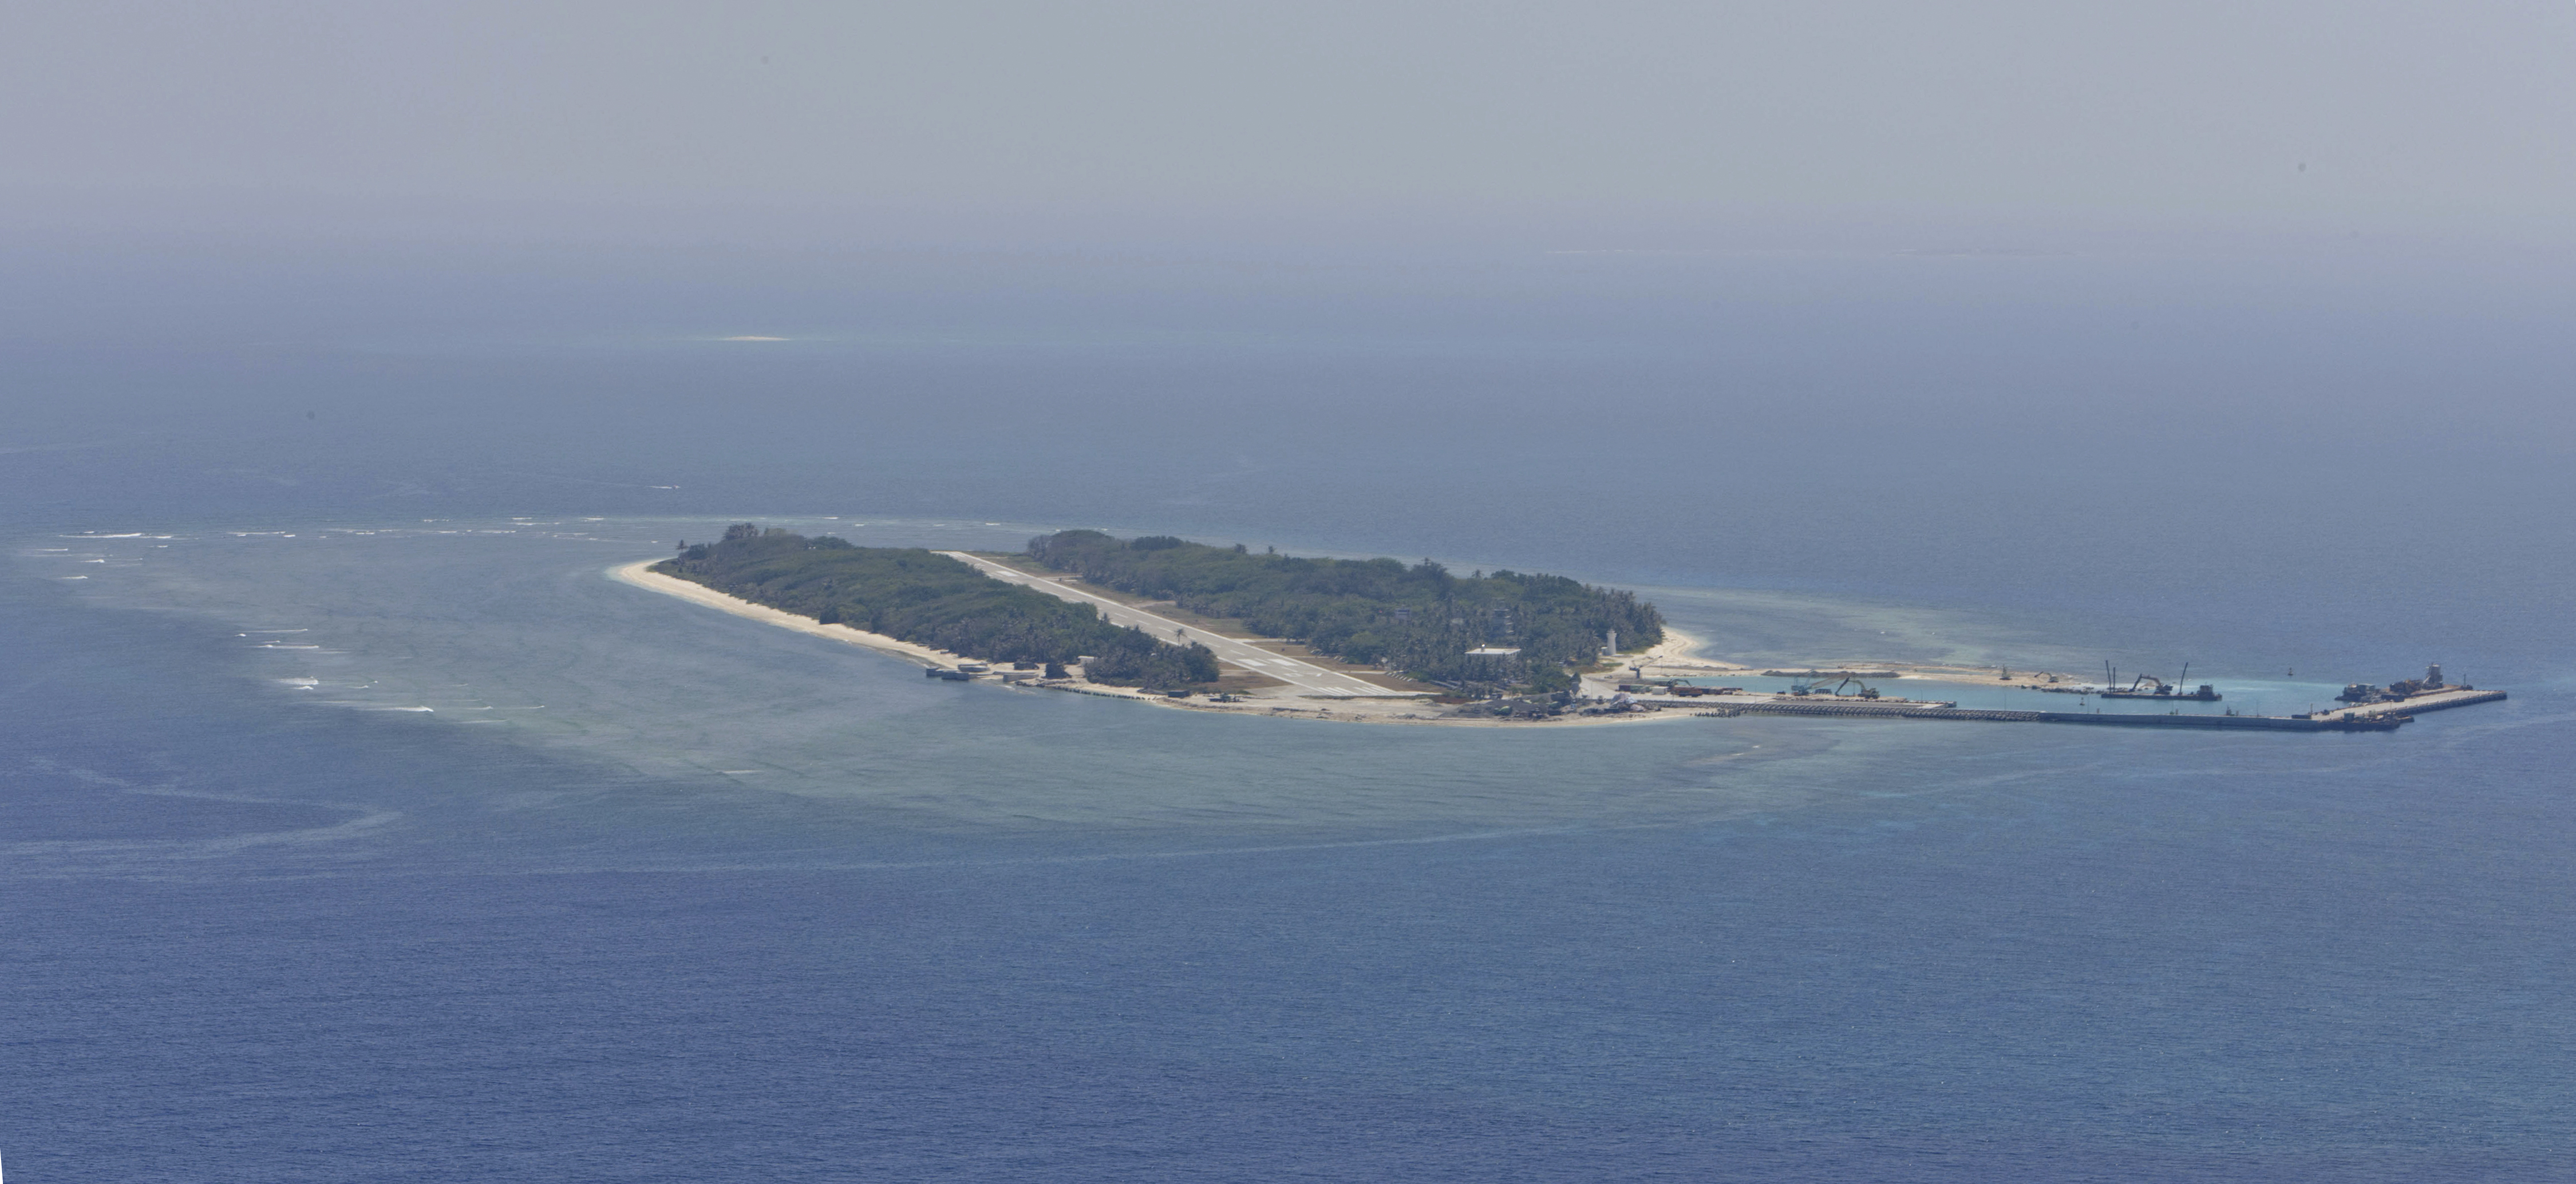 Itu Aba from the air.